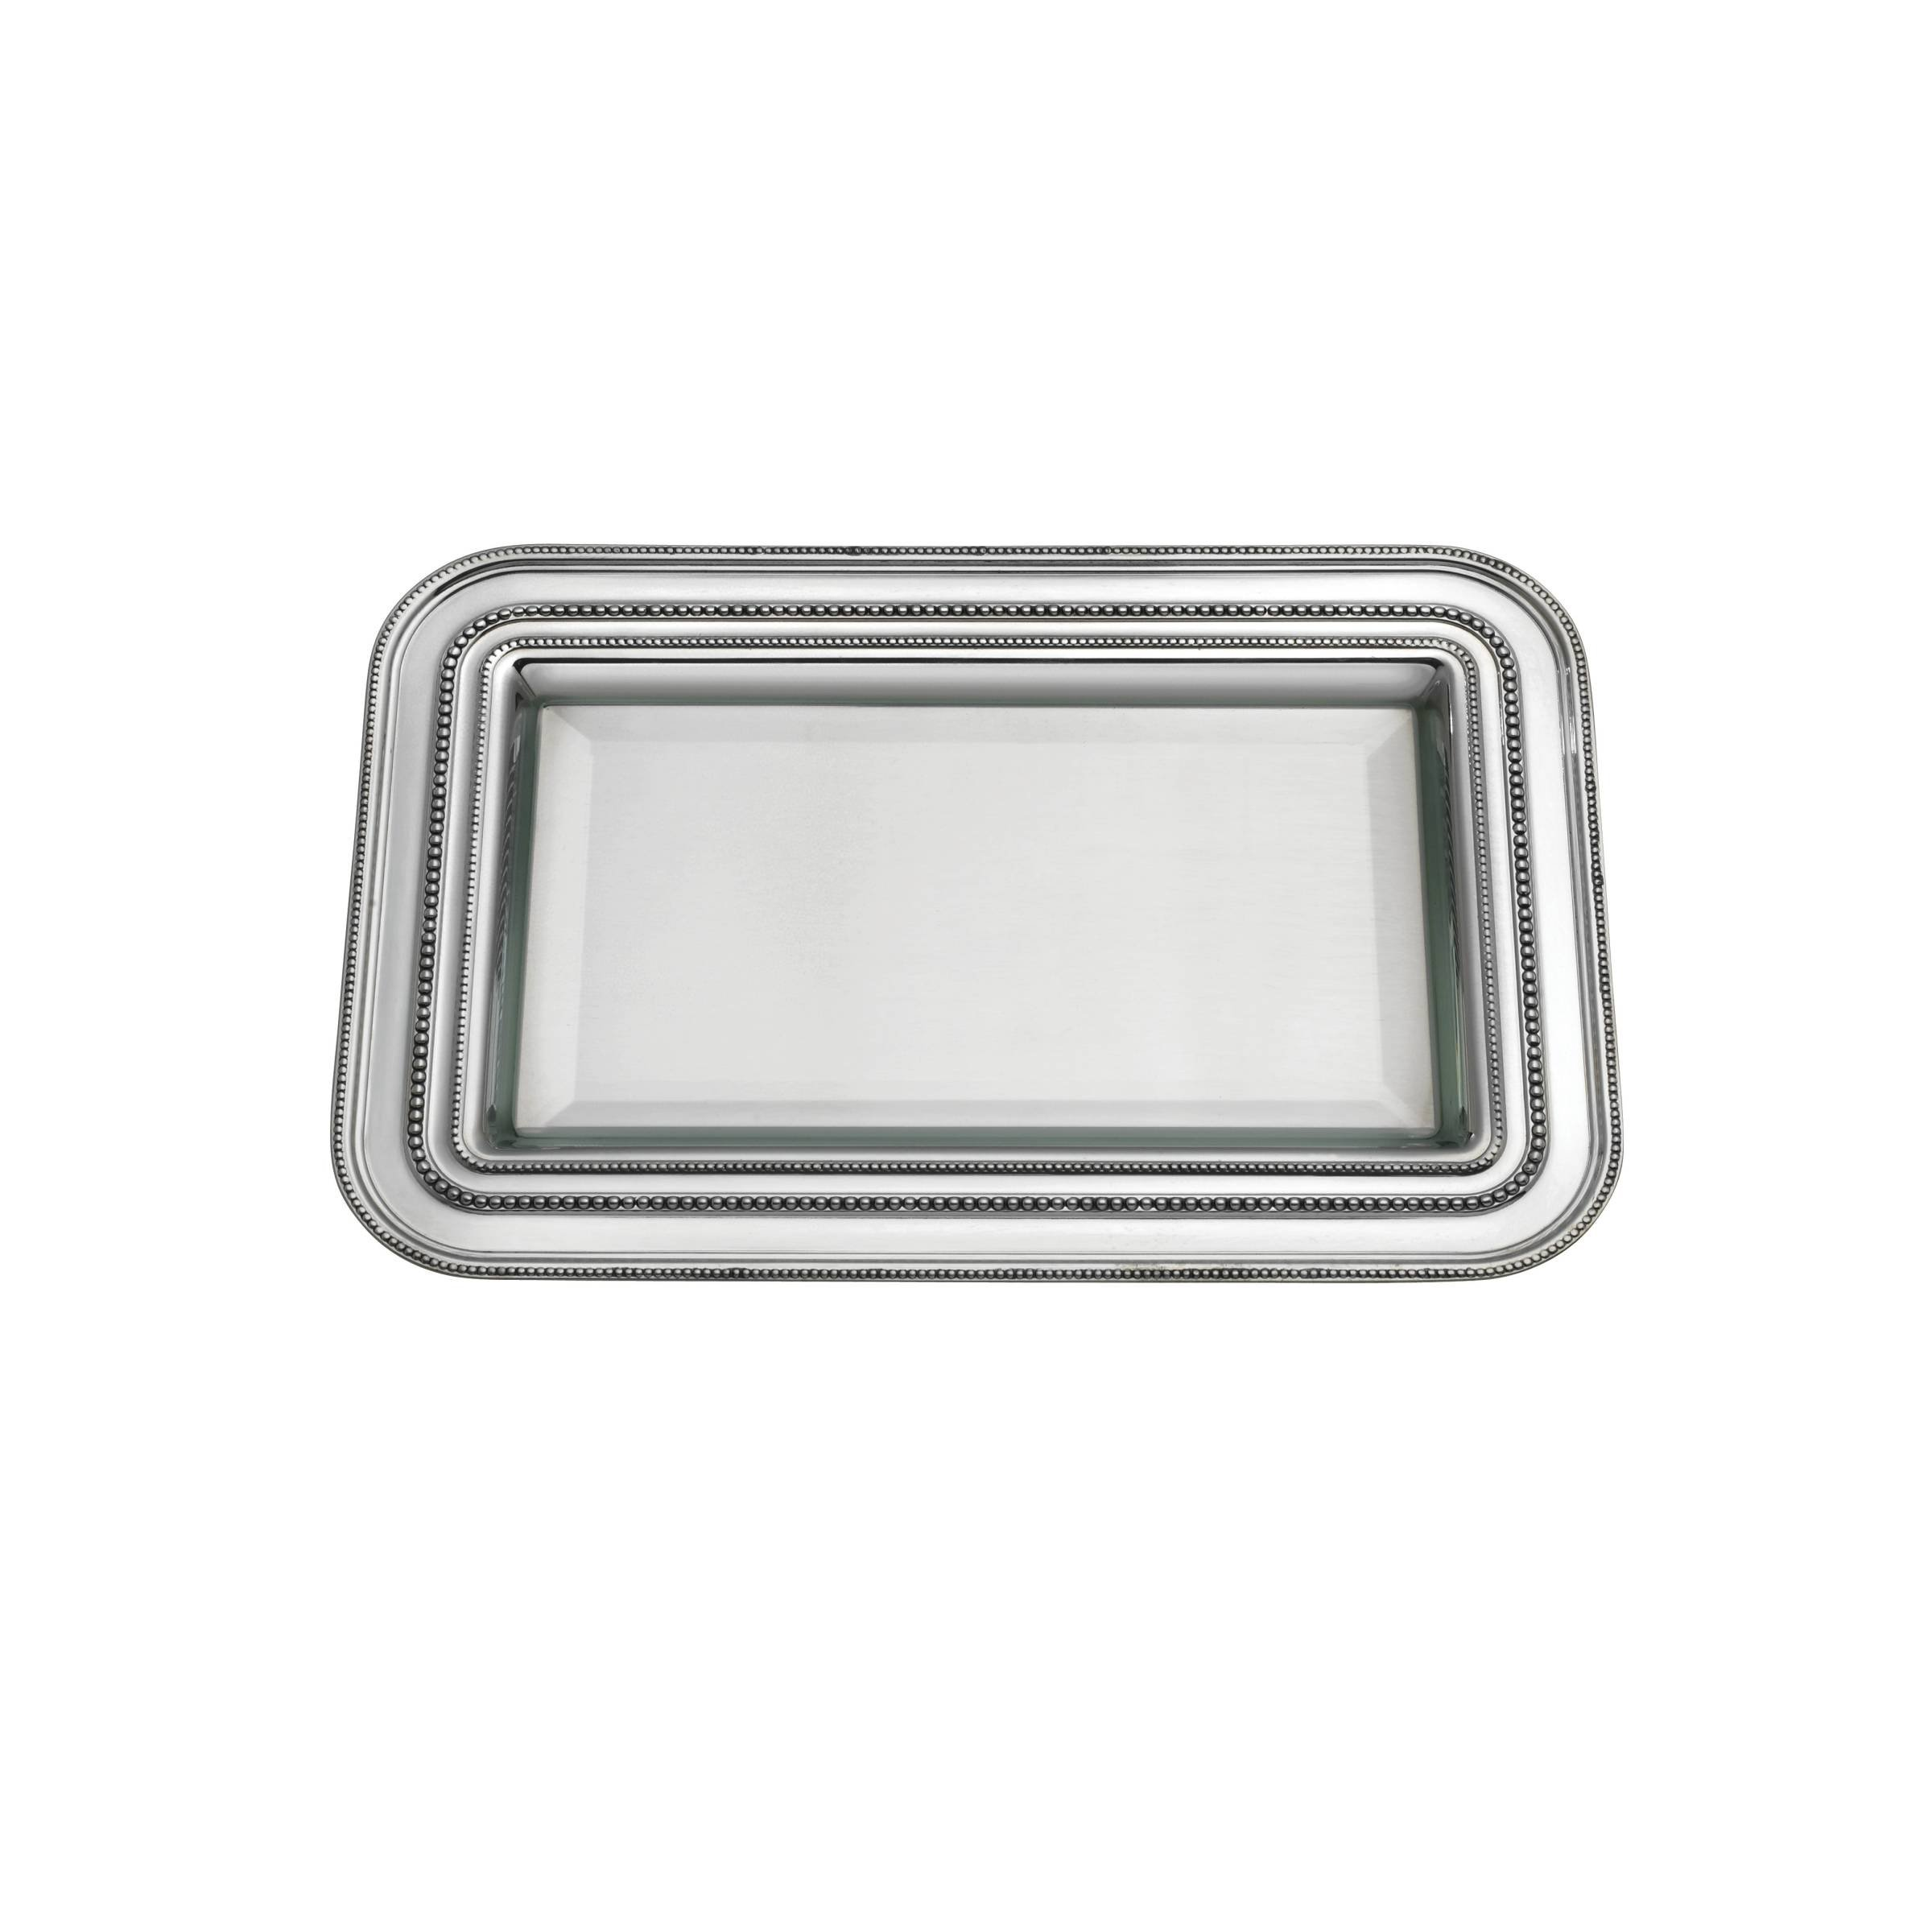 Reed & Barton, Thomas O'Brien August Small Tray 873796